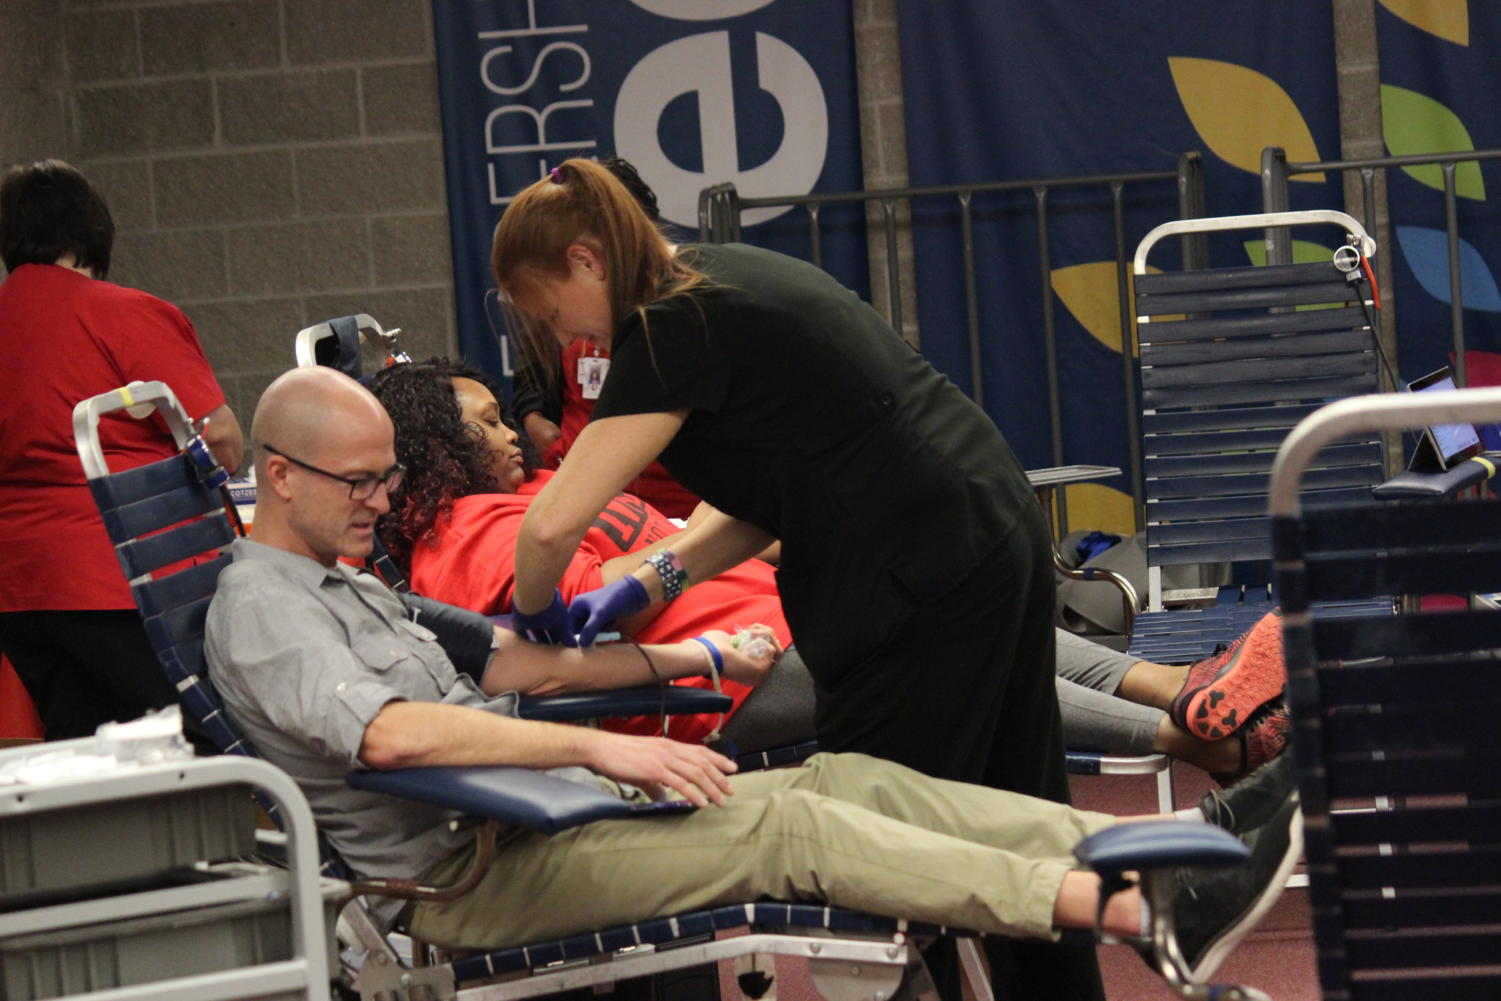 A man getting his blood drawn at UIS by the Mississippi Valley Regional Blood Center